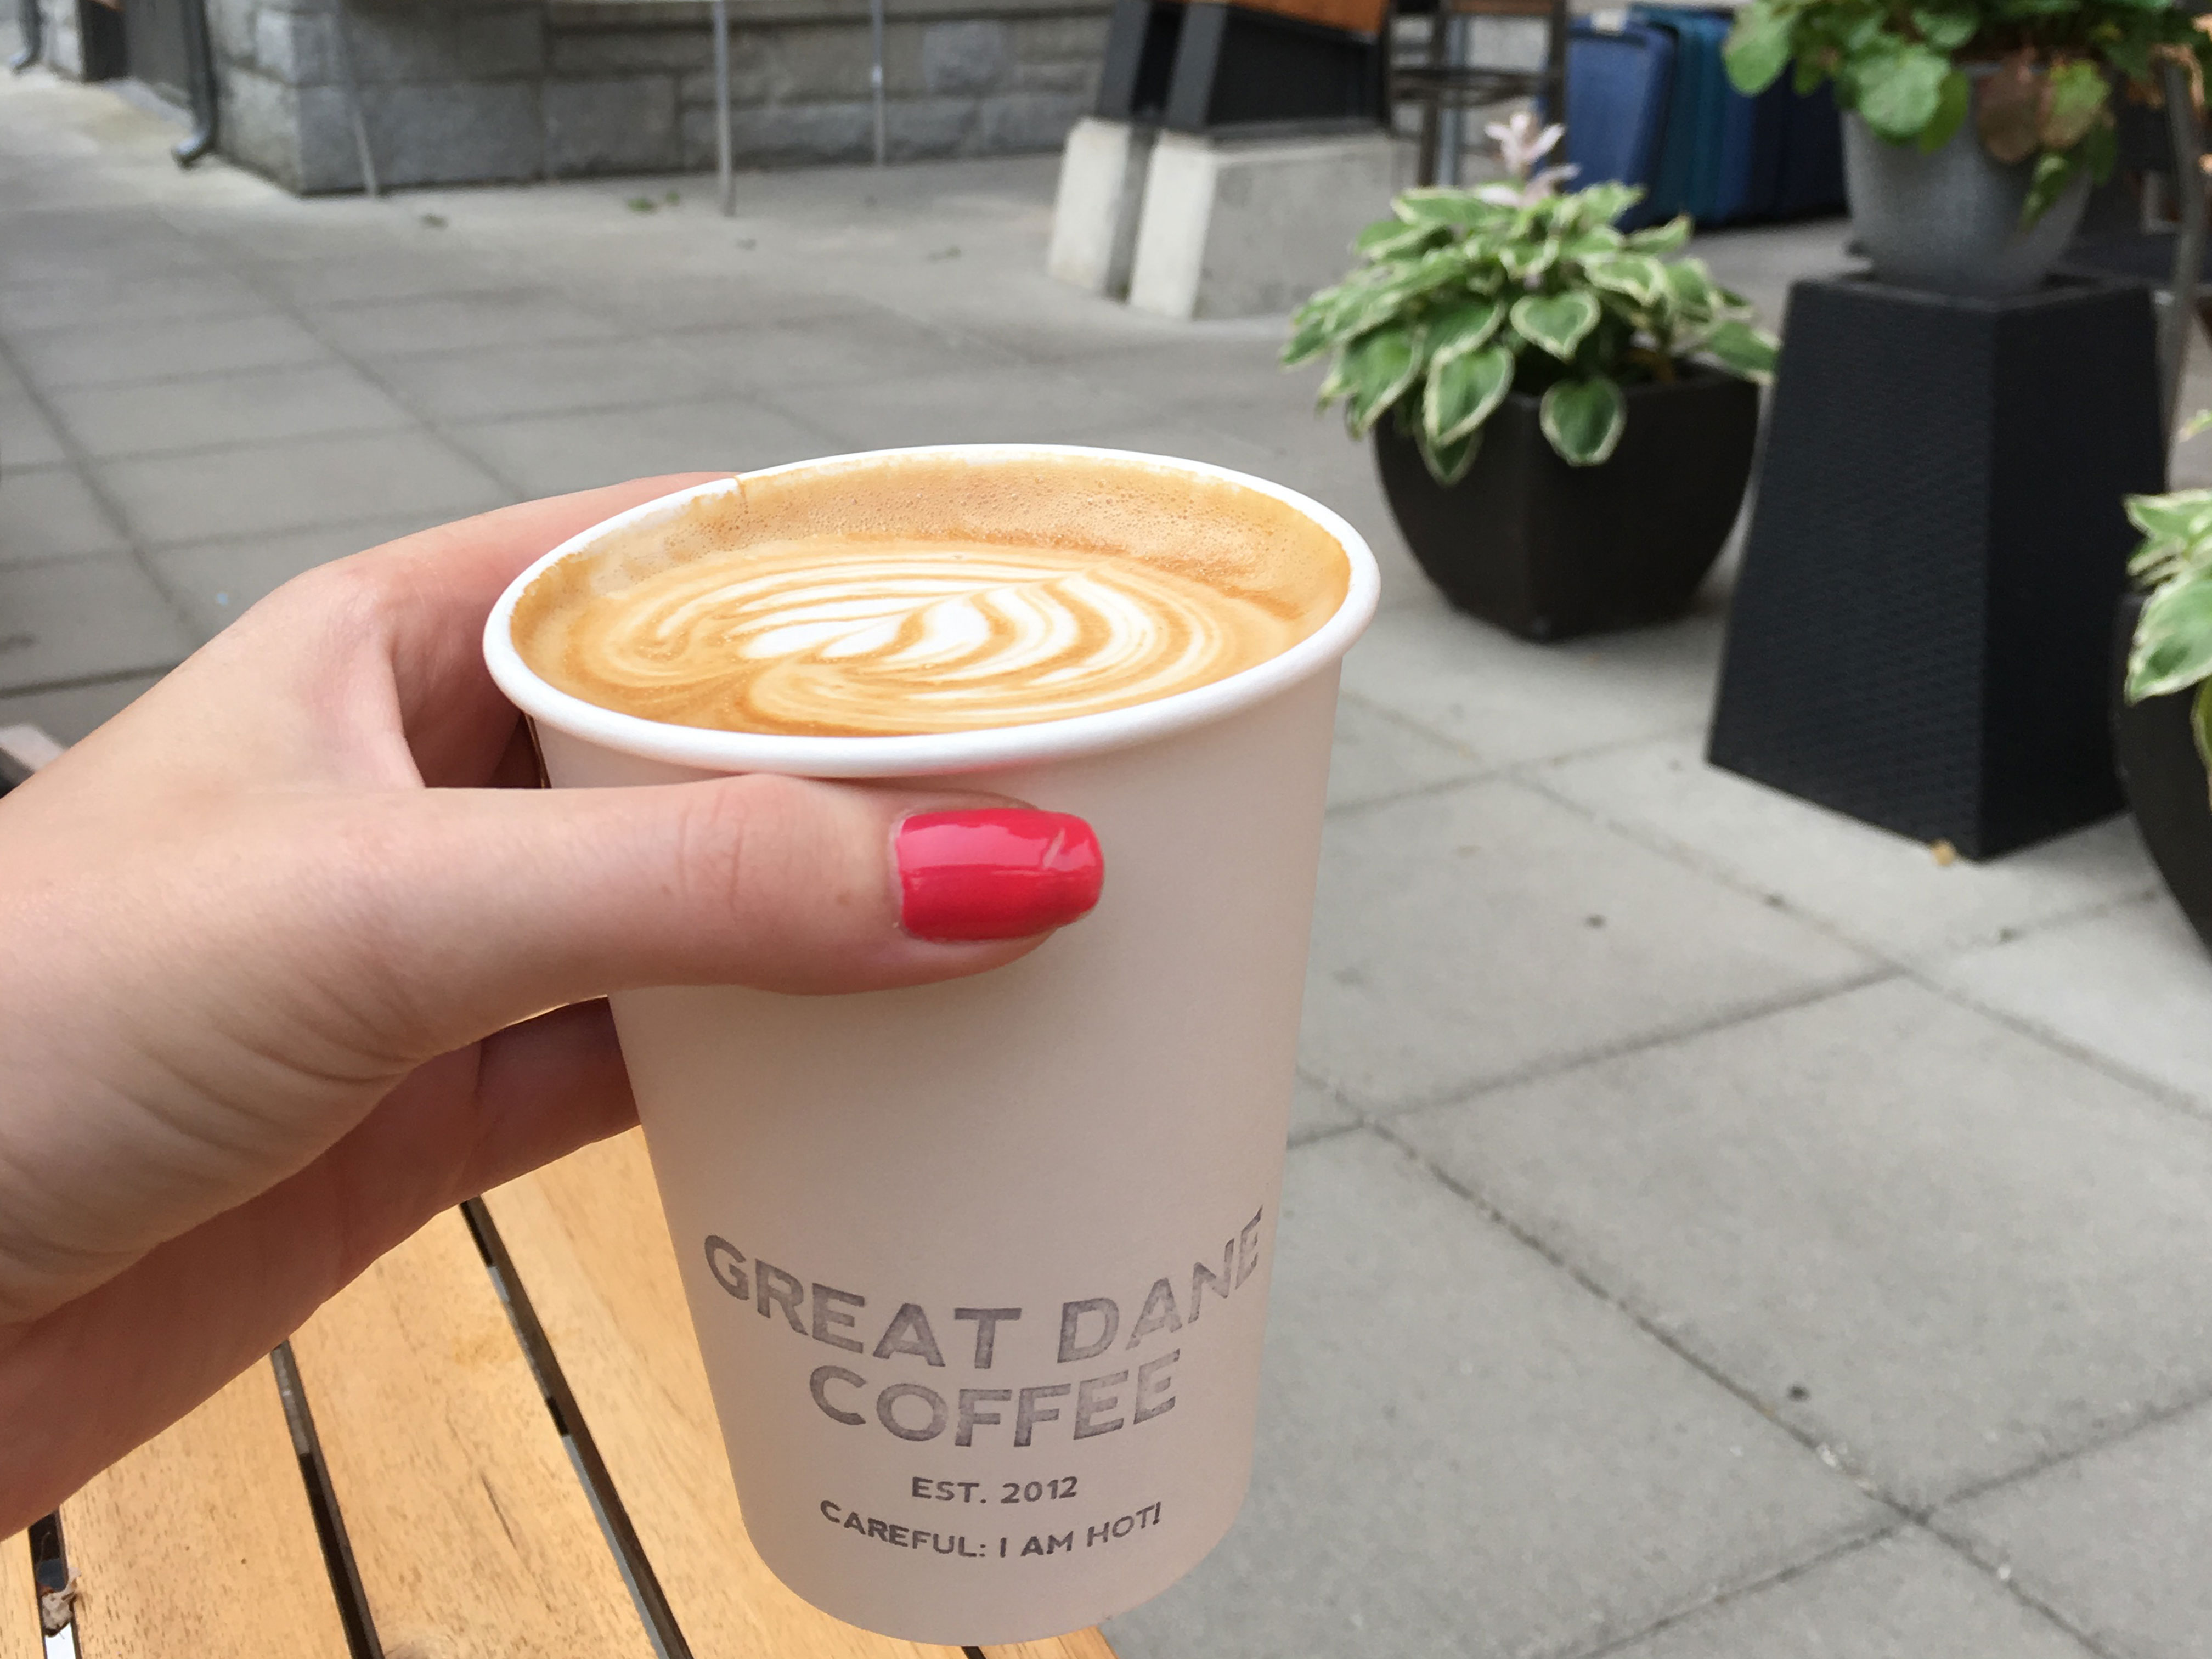 latte from great dane